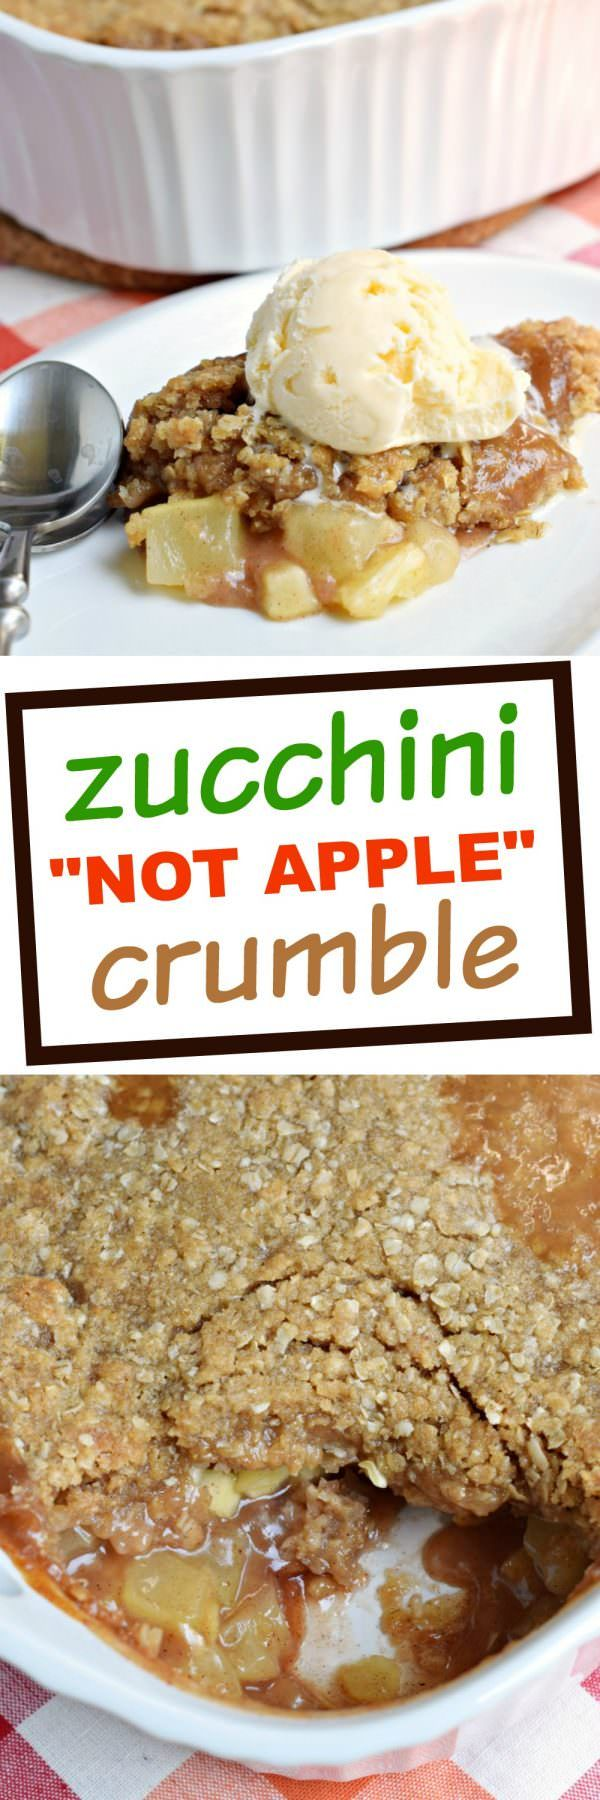 Don't tell anyone, but this hot Zucchini Crumble recipe is like apple pie, but with veggies! Sweet, caramel zucchini with a crunchy cinnamon crumble…